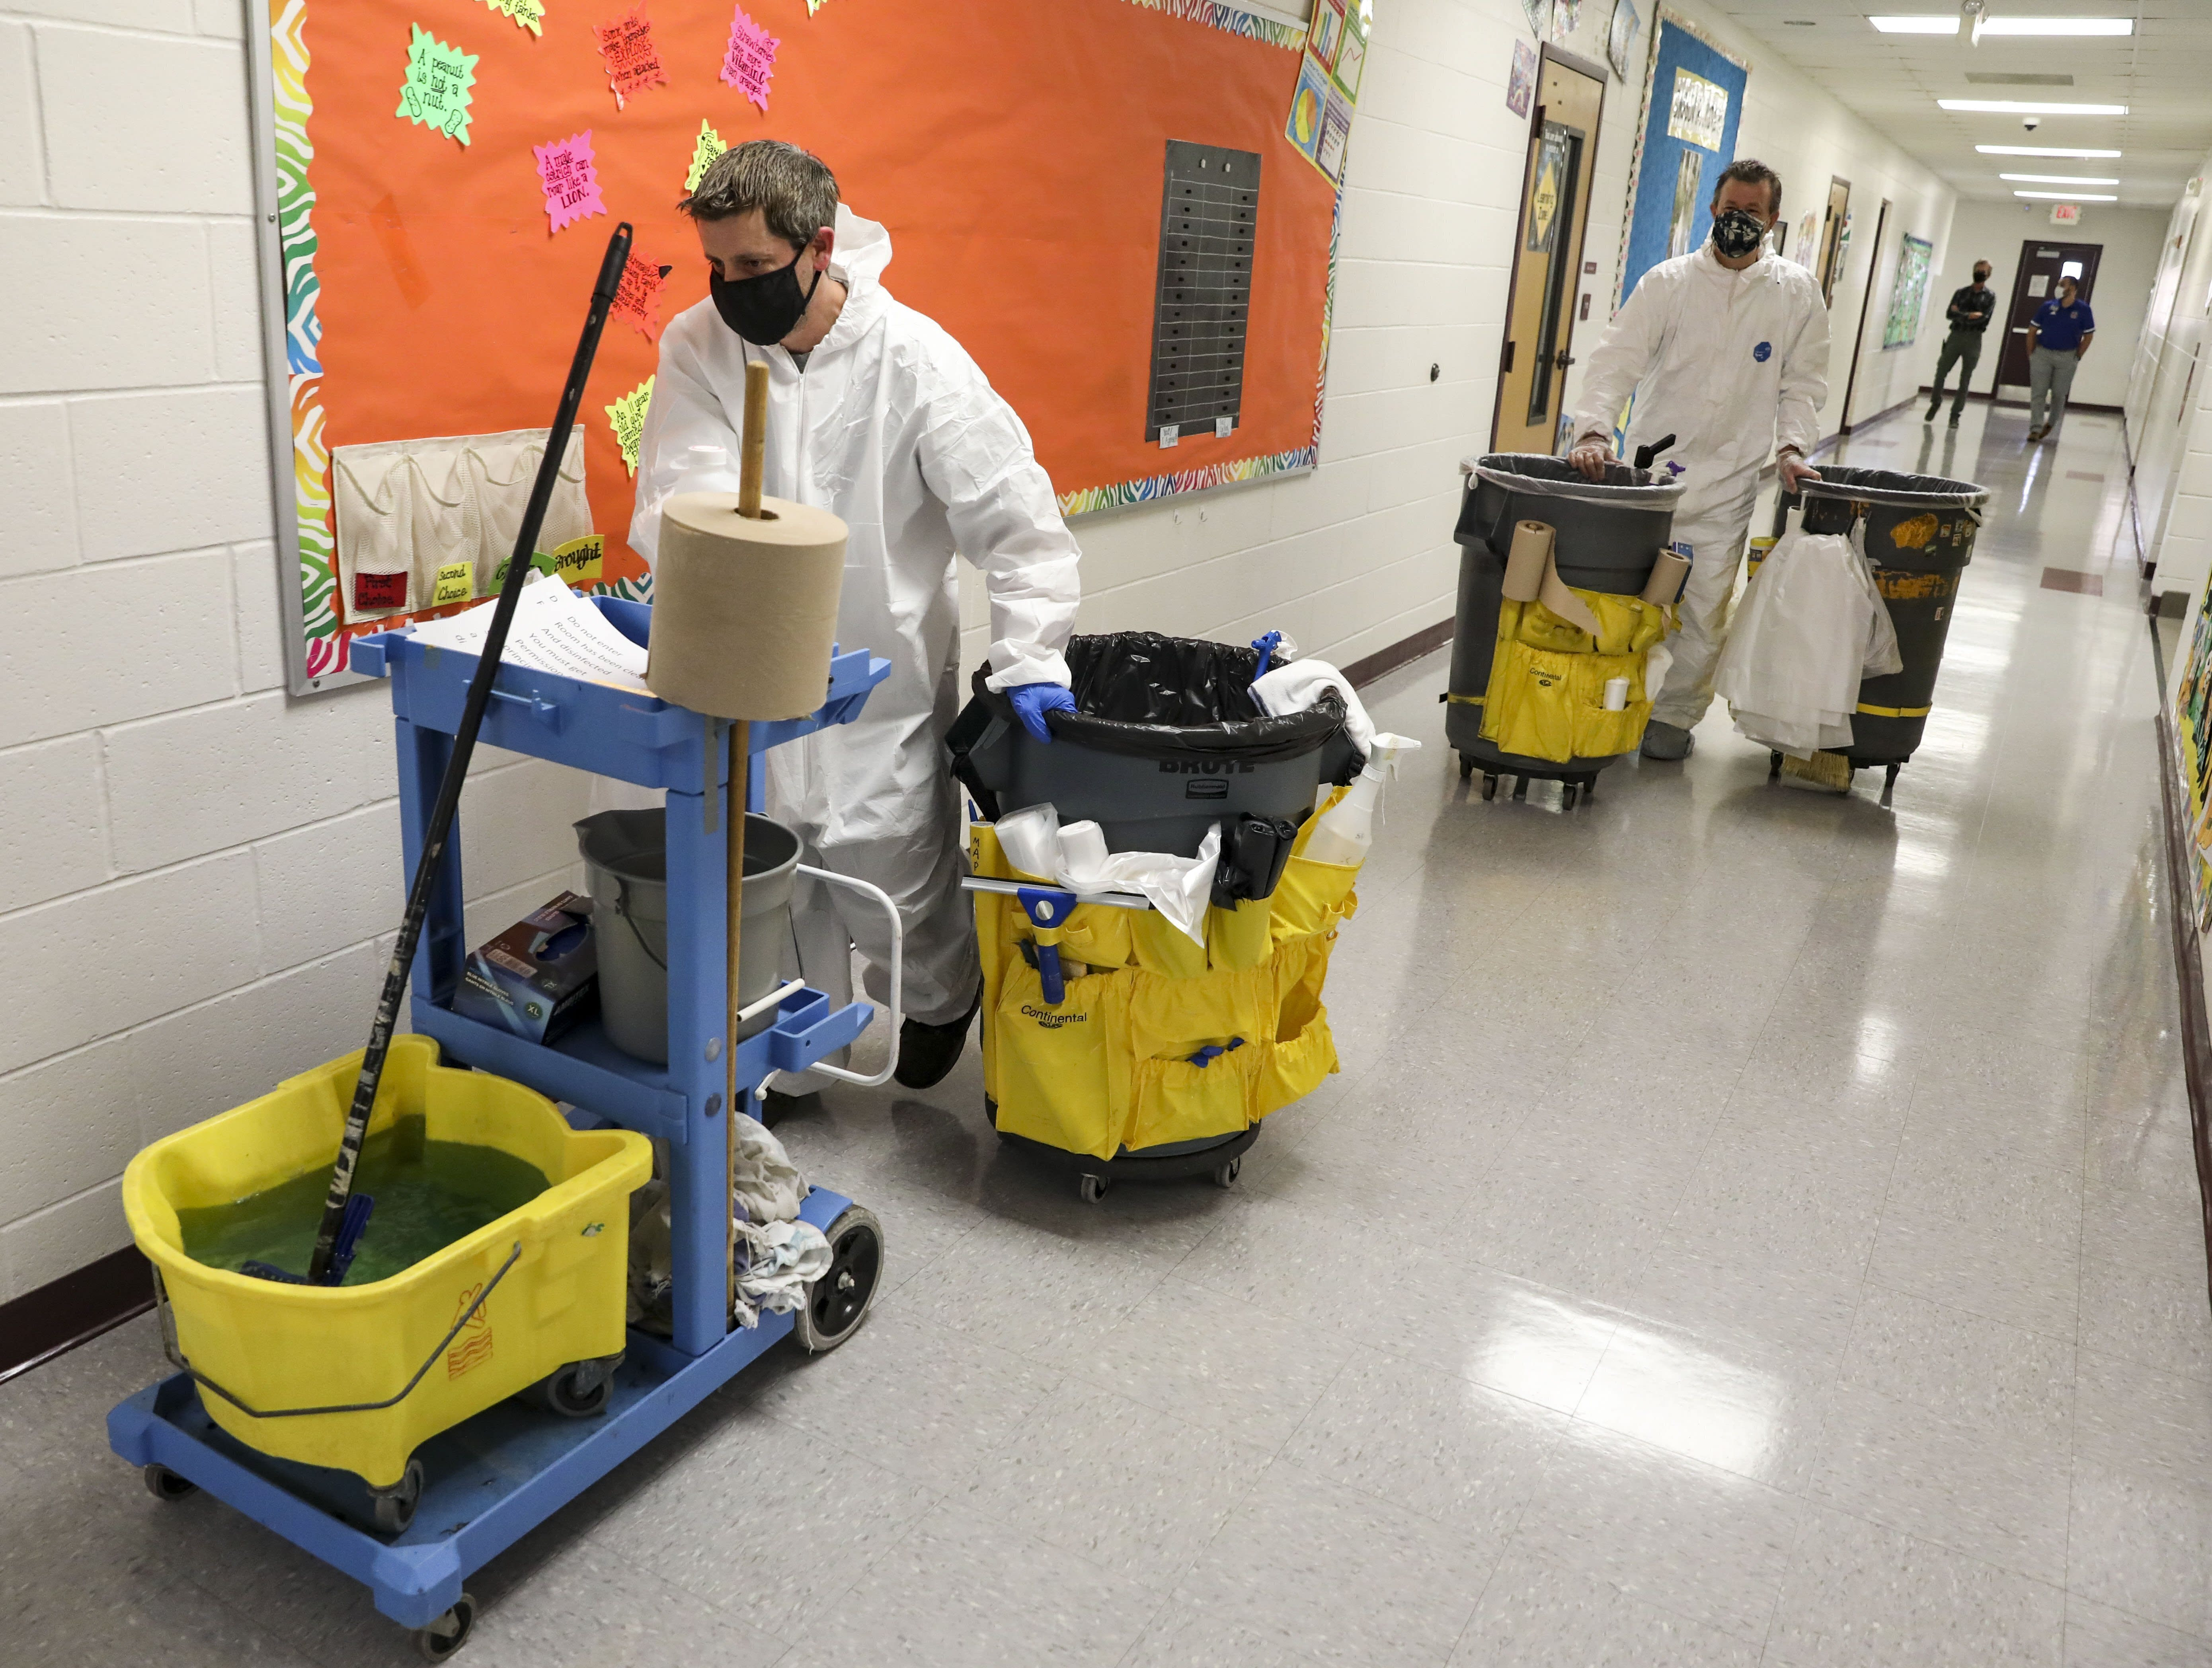 FILE - In this Nov. 5, 2020, file photo, Mike Wagner, left, and Ken Gleich, dressed in hazmat suits, wheel cleaning carts to their next classroom as they disinfect Richard A. Simpson Elementary School in Arnold, Mo. A deadly rise in COVID-19 infections is forcing state and local officials to adjust their blueprints for fighting a virus that is threatening to overwhelm health care systems. Schools are scrapping plans to reopen classrooms. More states are adopting mask mandates. (Colter Peterson/St. Louis Post-Dispatch via AP, File)